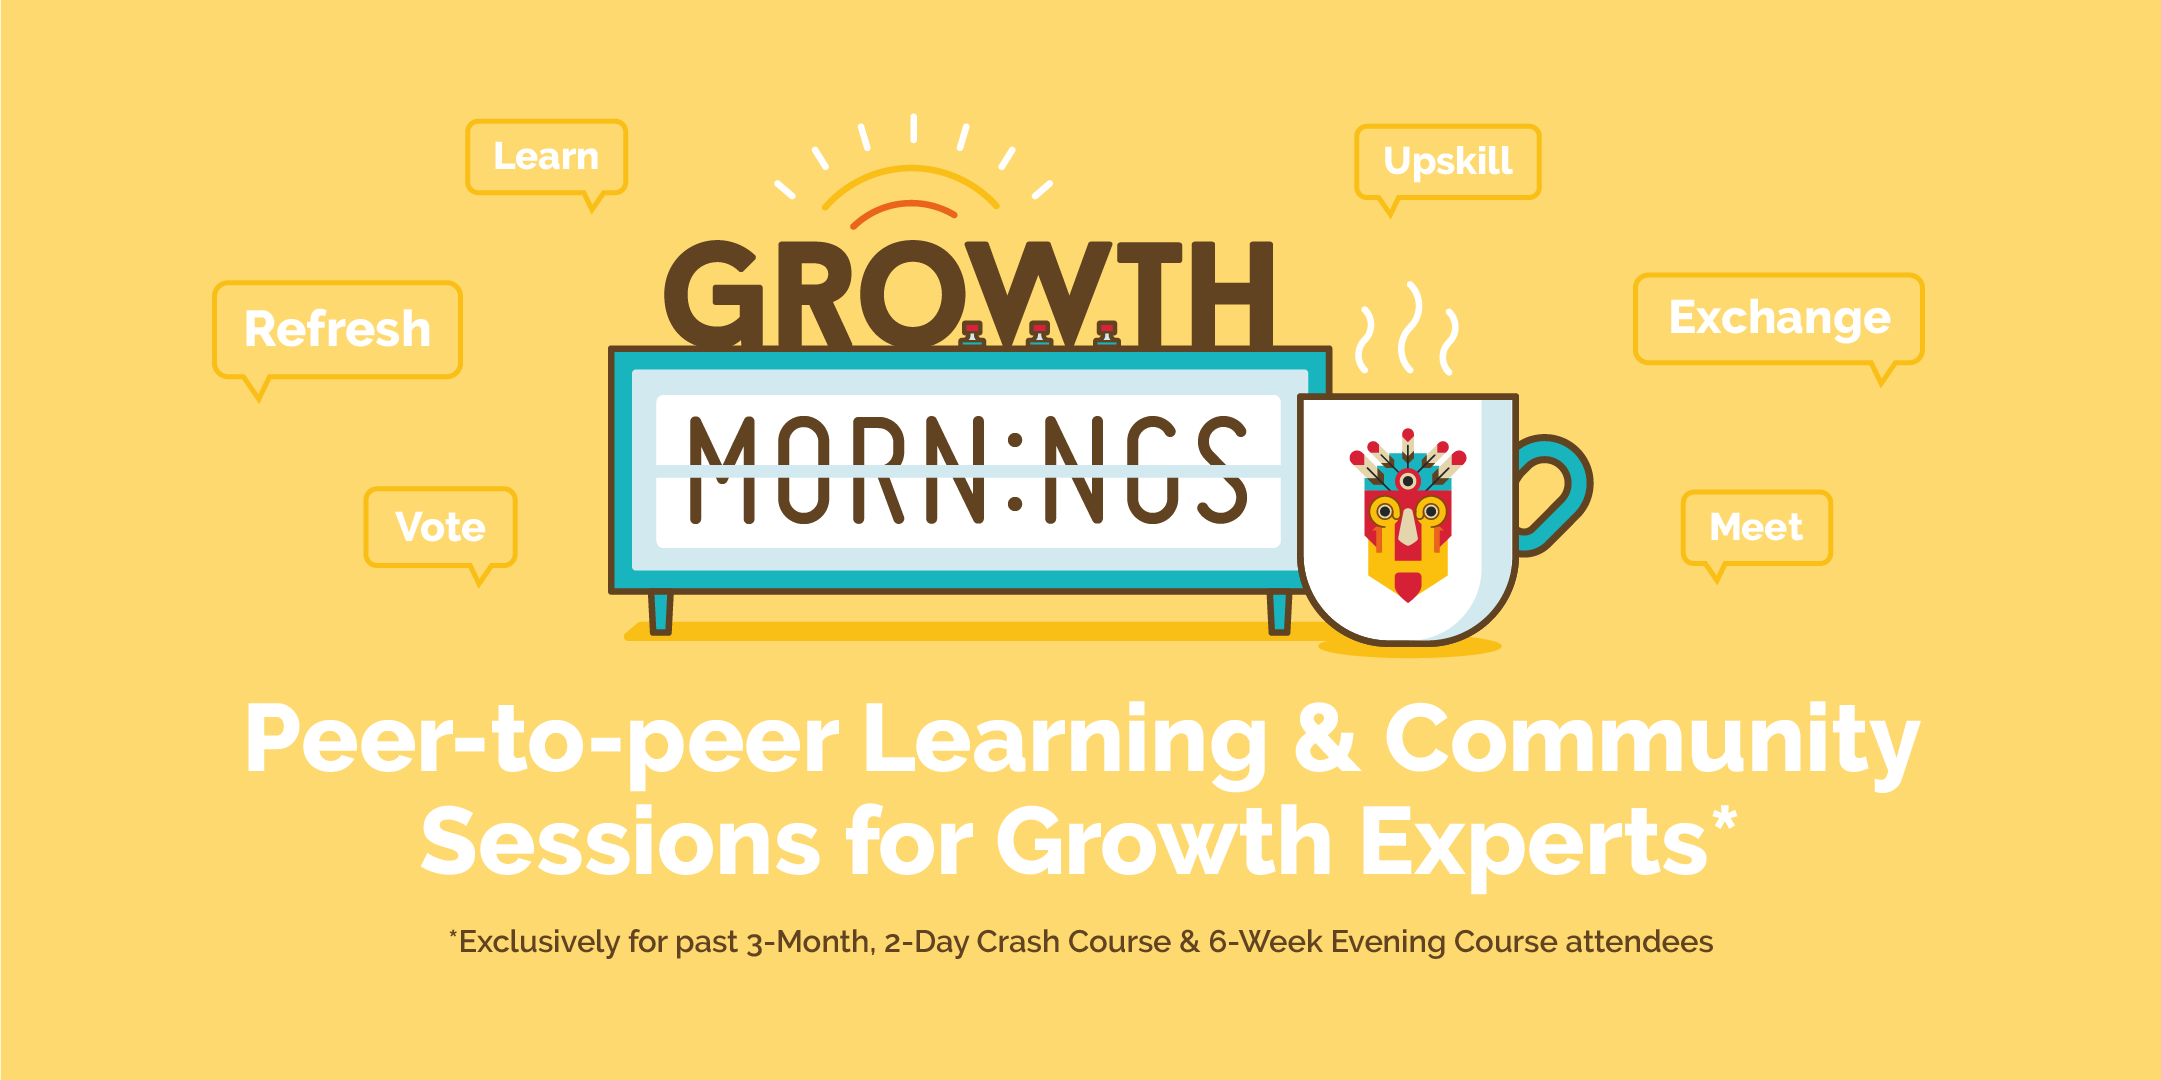 Growth Mornings: We're bringing together the